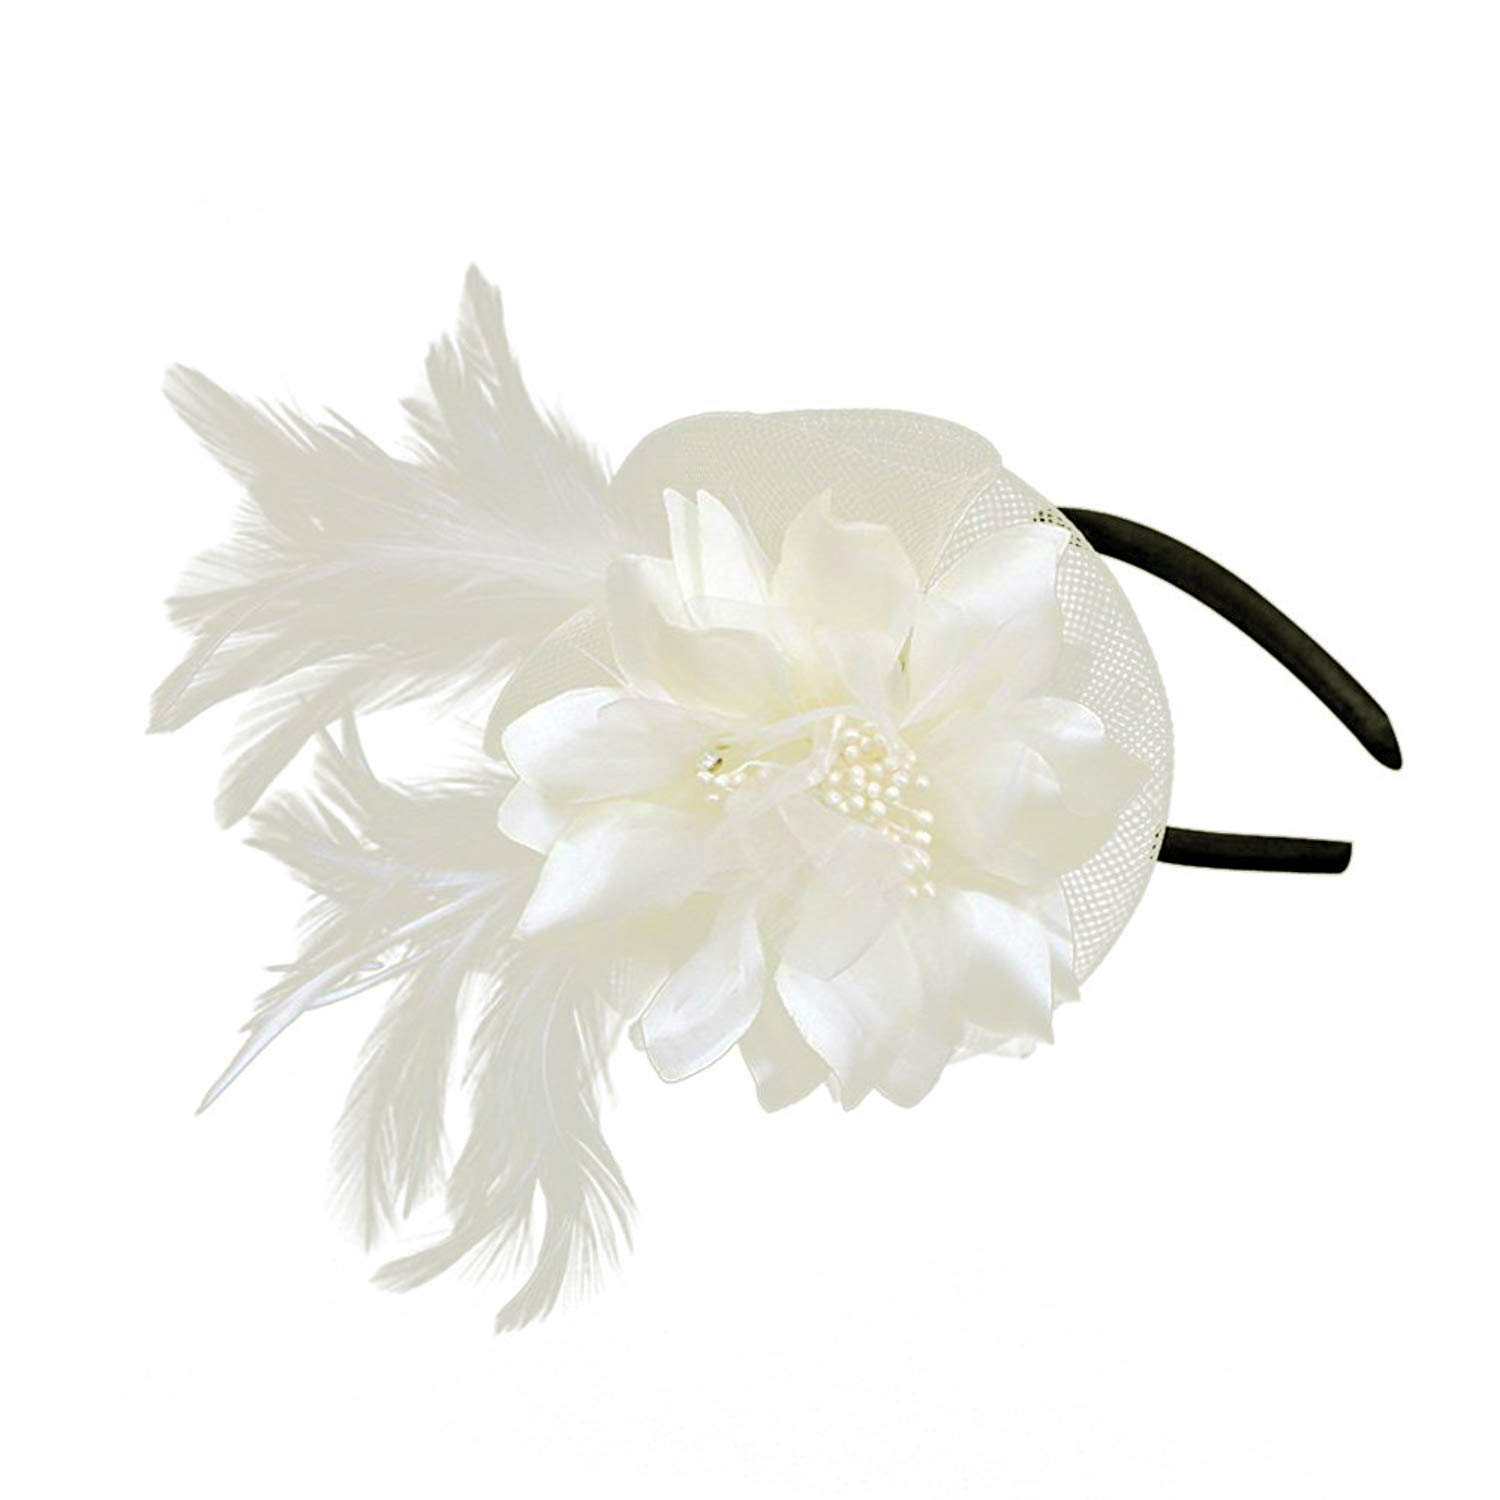 Netting Feathers Big Flower Headband Party Girls Women Fascinator Headwear Cocktail Hat Head Decoration